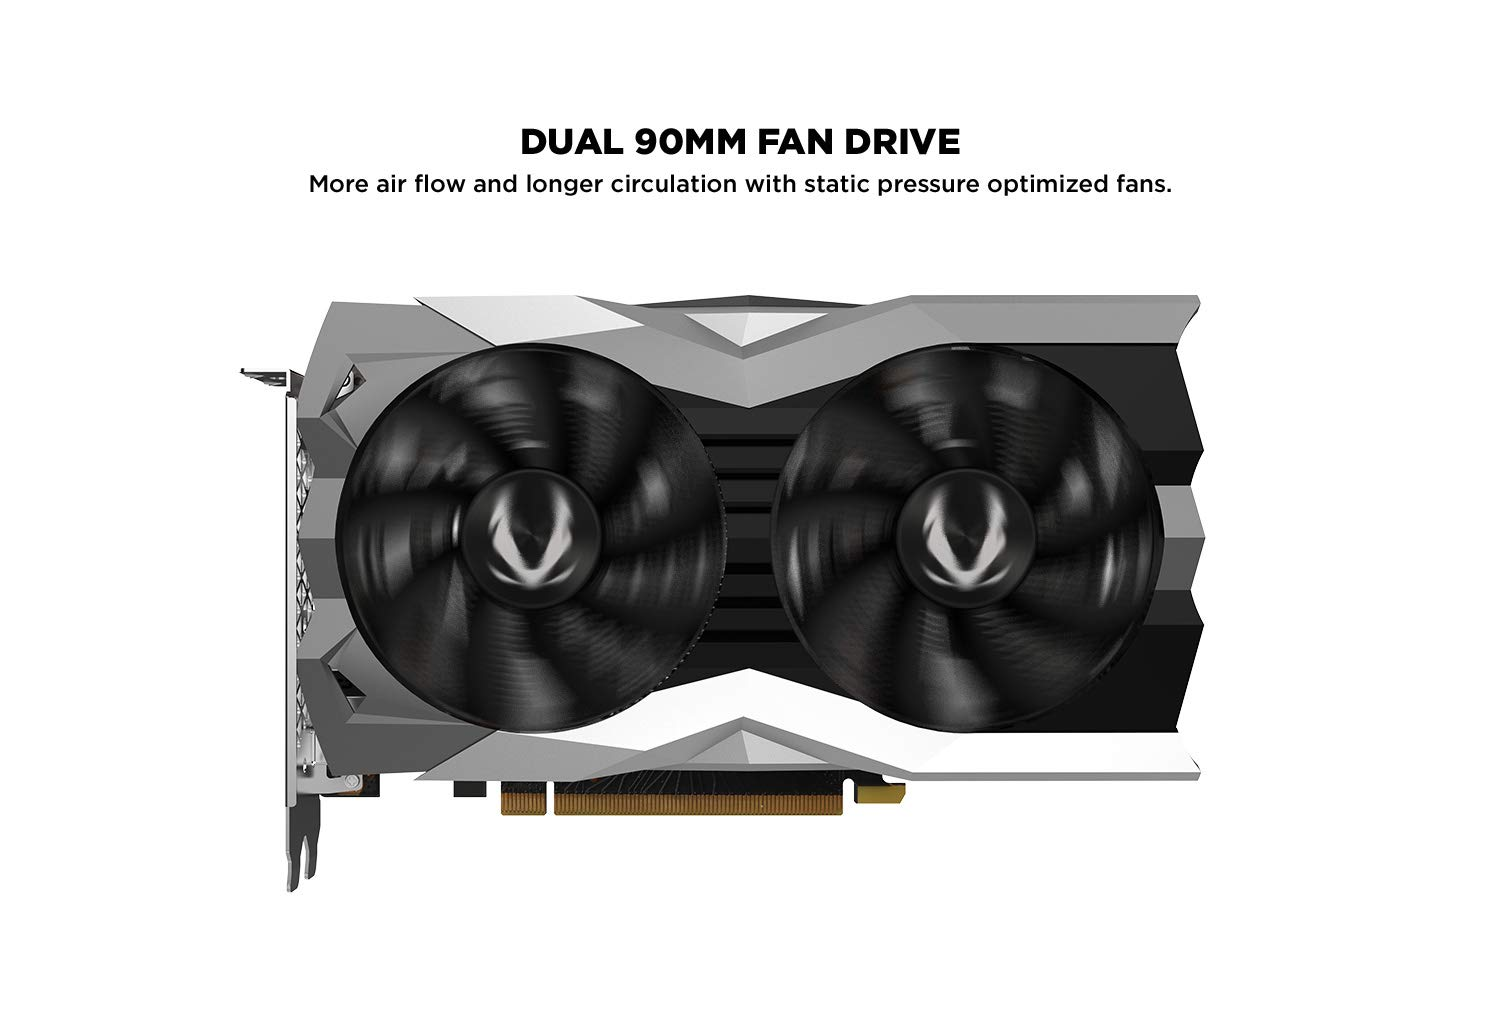 ZOTAC Gaming GeForce RTX 2060 Twin Fan 6GB GDDR6 192-bit Gaming Graphics  Card, Super Compact, IceStorm 2 0, ZT-T20600F-10M